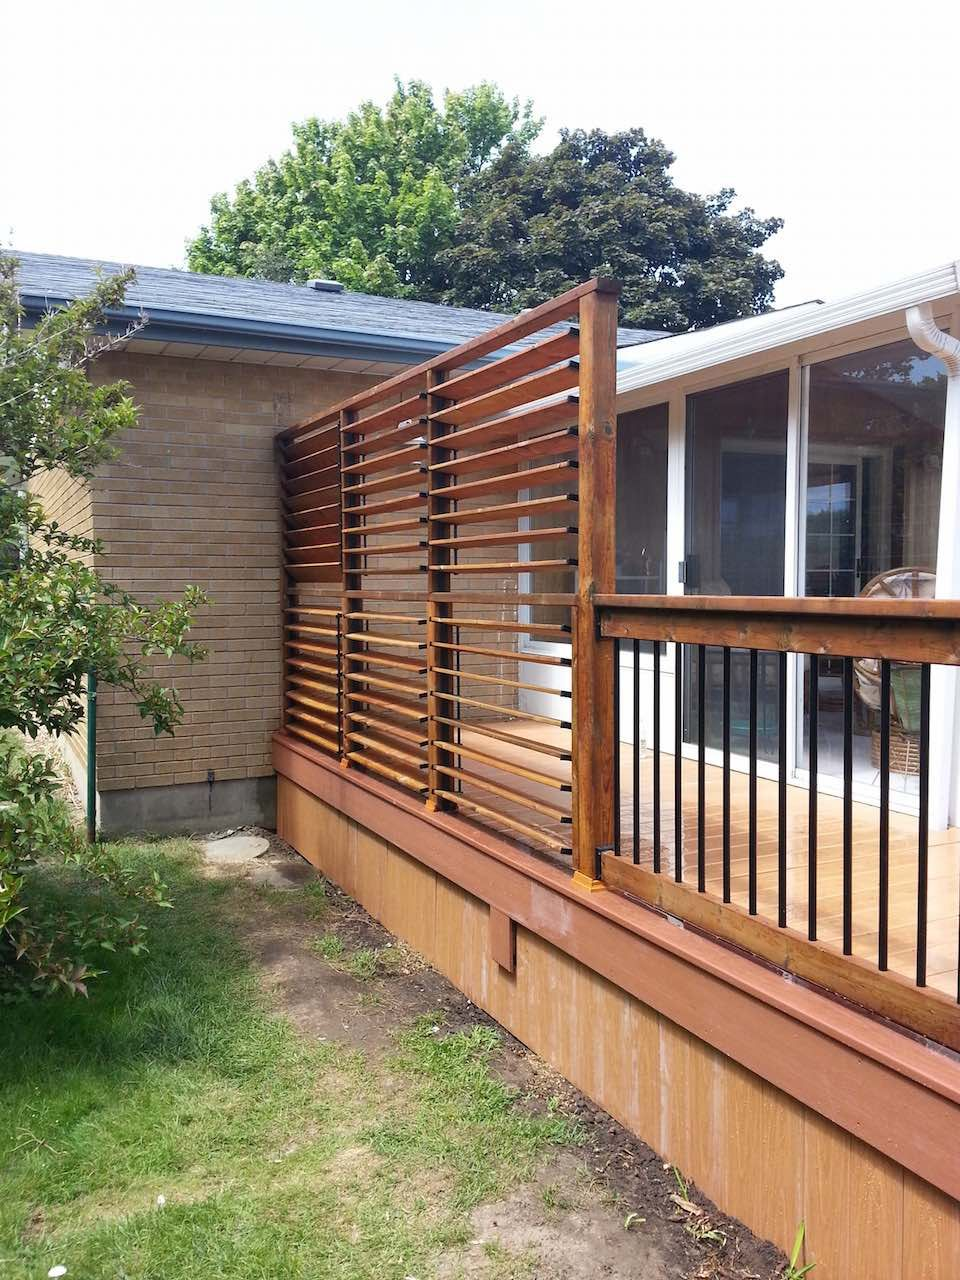 Backyard privacy screen louvers great solution by flex for Patio deck privacy screen